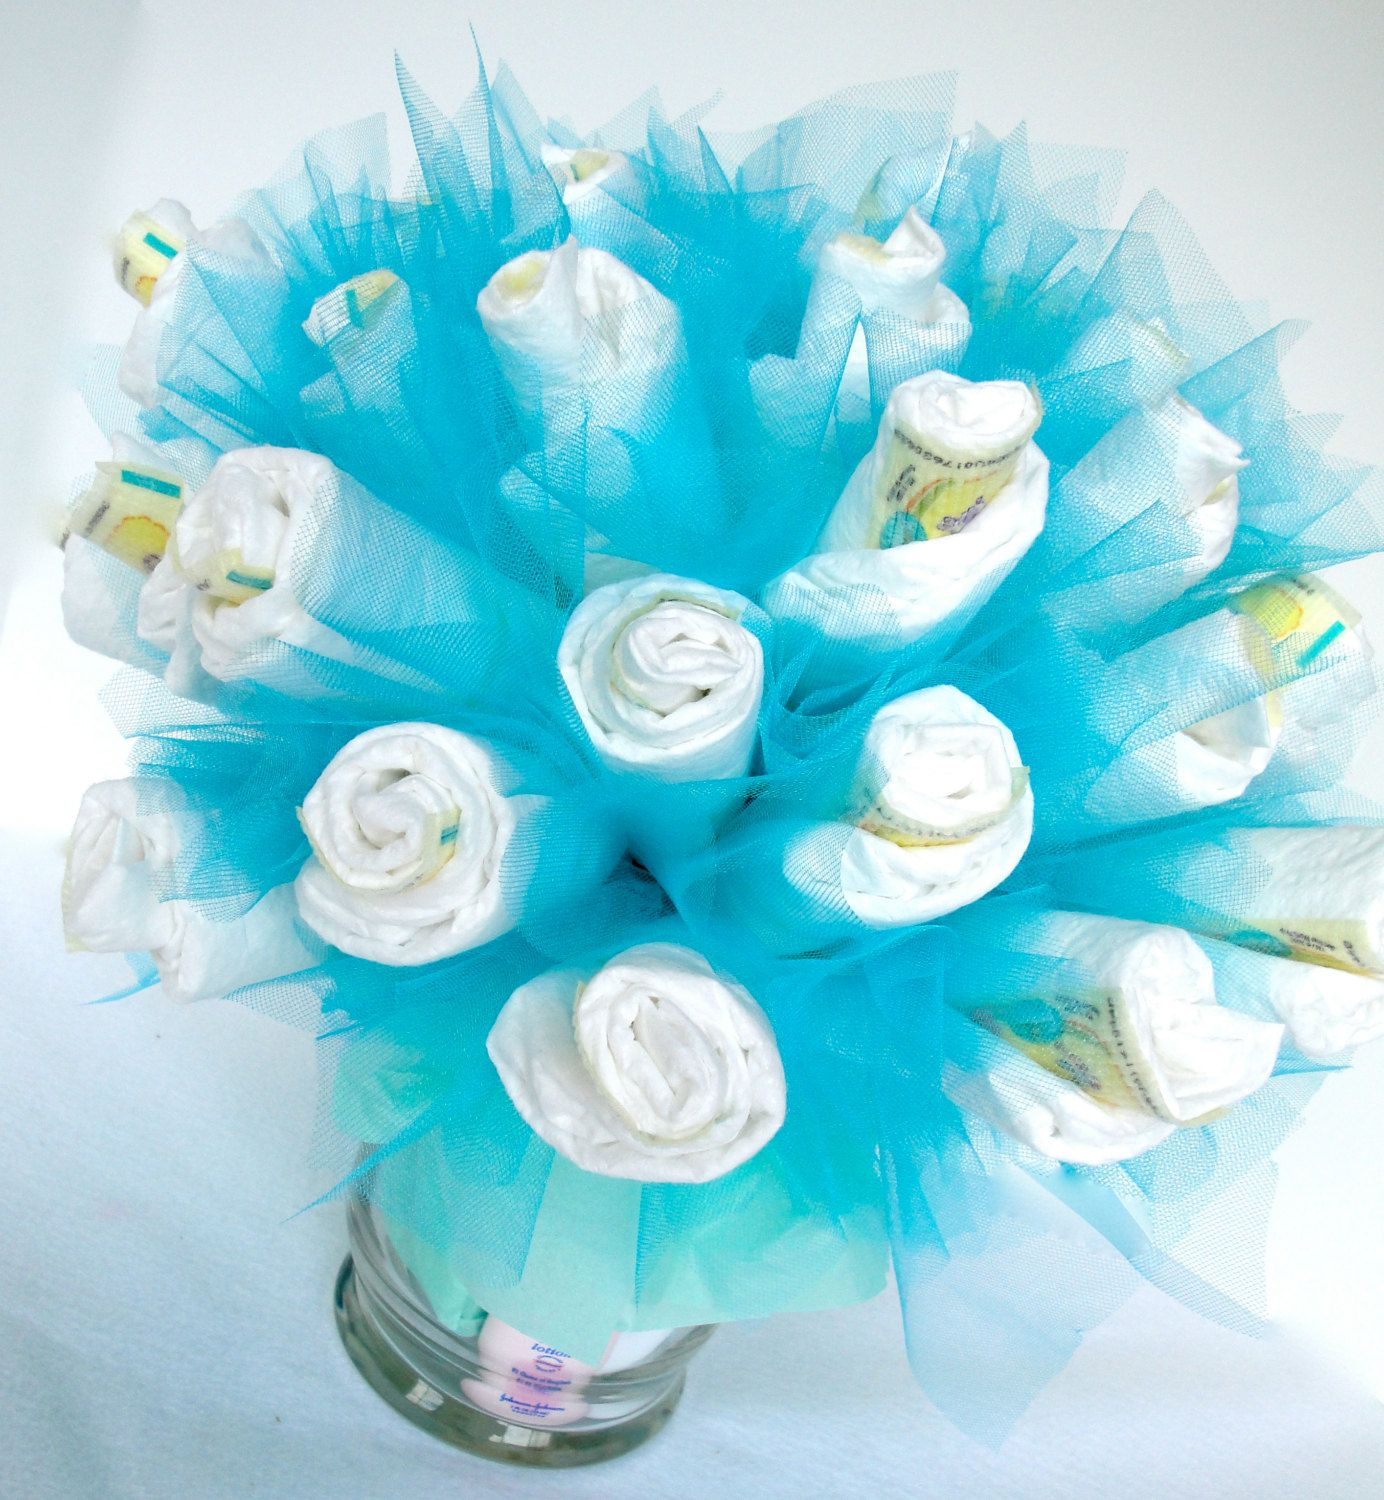 Boy Baby Shower Centerpieces | Request a custom order and have ...